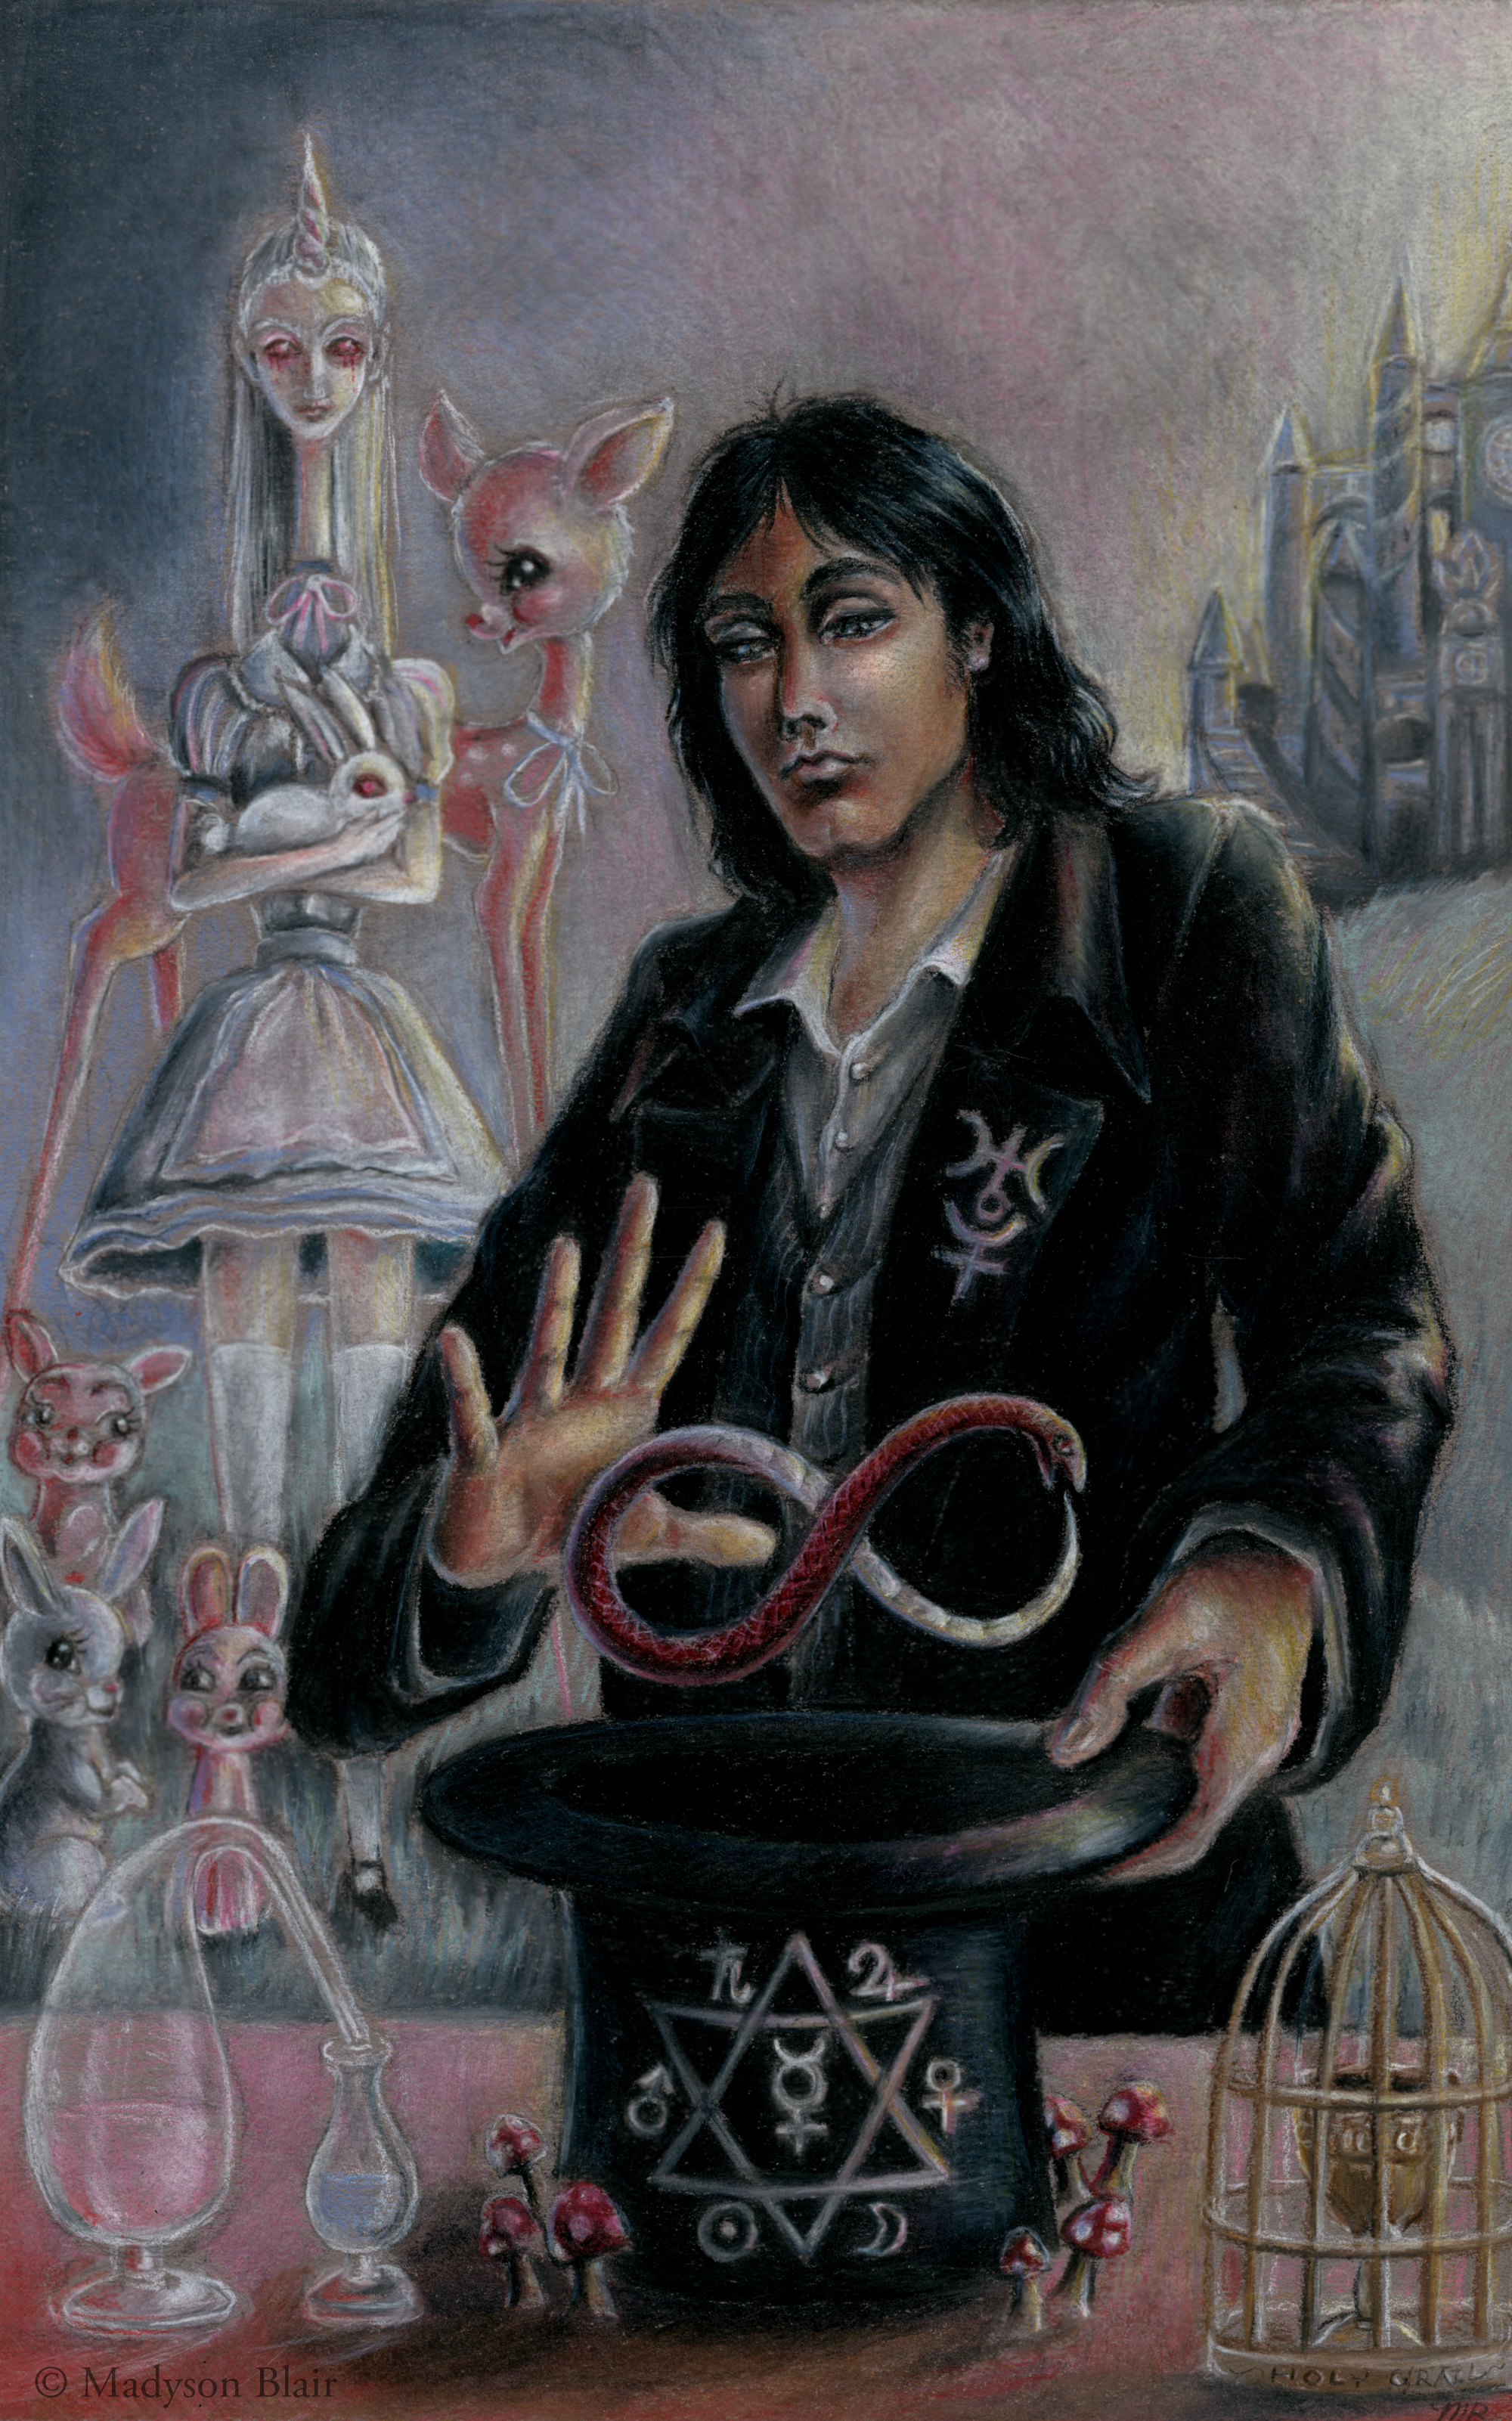 'The Magician'--Symbolic-driven portrait of Ervine, Alastair's grandson and a major character in Book II.